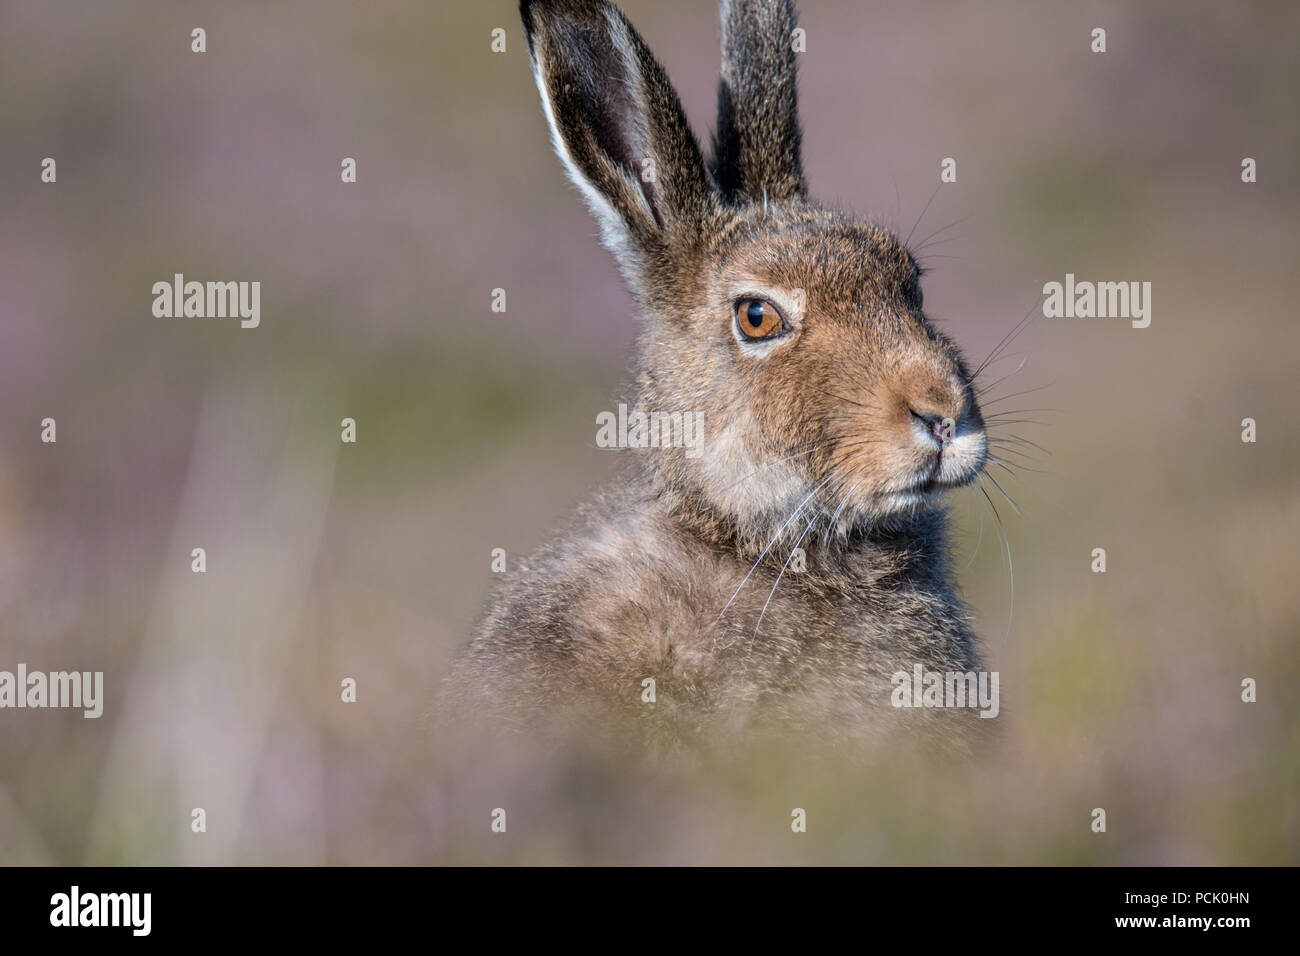 Close up of a mountain hare (lepus timidus) sitting amongst soft-focus heather in the summer - Stock Image